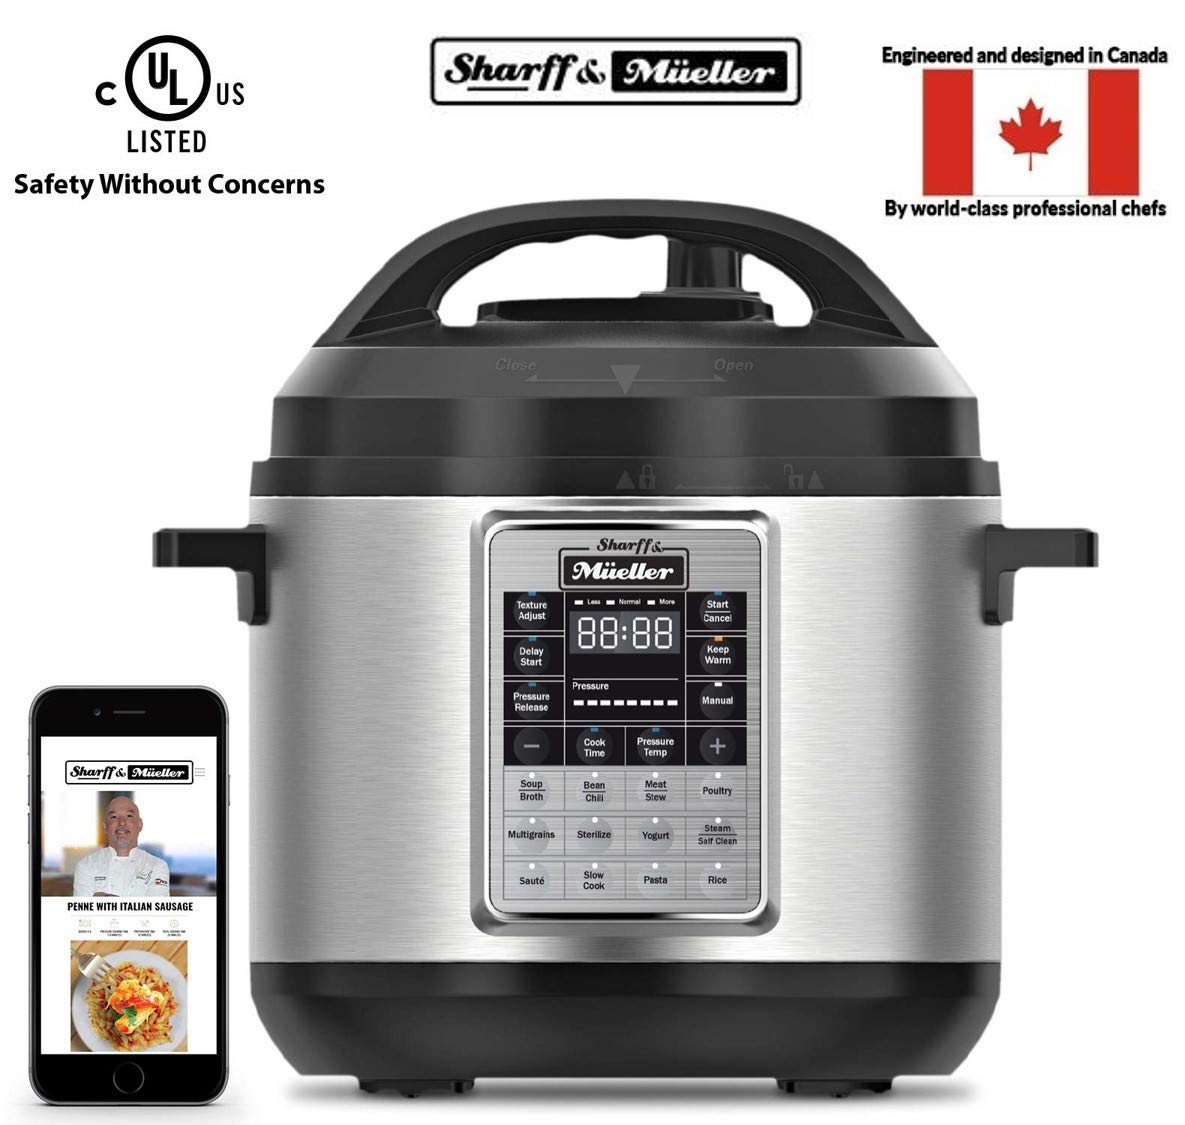 Sharff & Mueller Electric Pressure Cooker 6 Quart Stainless Steel, 12 in 1 Programmable Multipot, Slow Cooker, Auto Steam Release Button, Delayed Start, With Glass Lid, Free RecipeBook product image